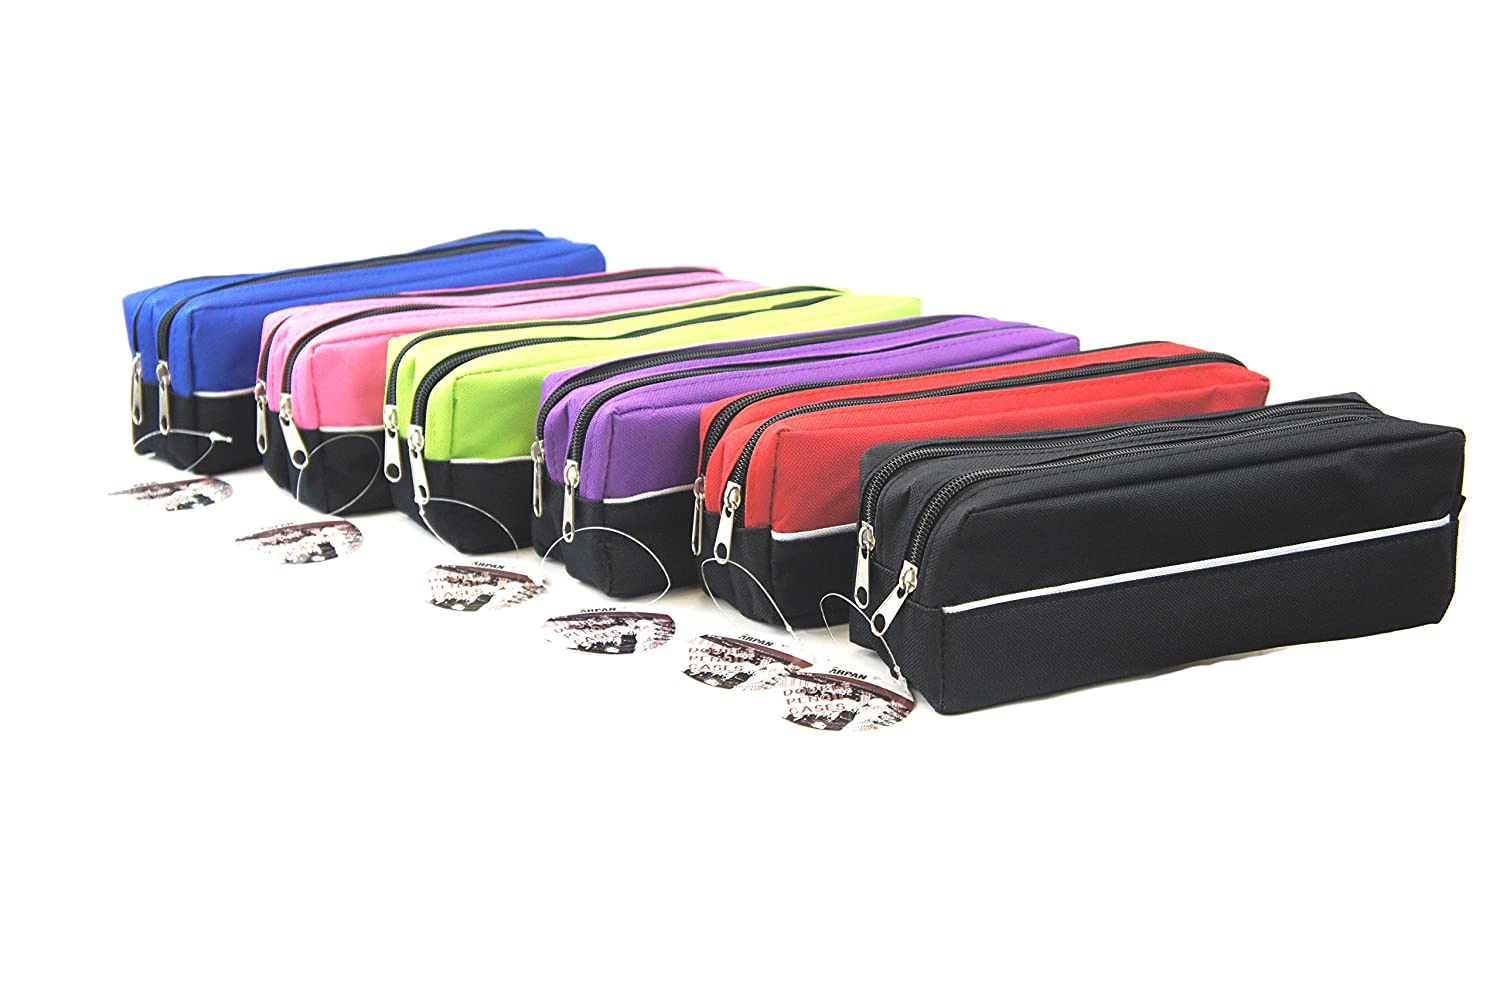 Arpan X-Large size Double Zip Fabric Pencil Case Ideal For School//College//Uni.- Make Up x 1 CL-PCRD-OR RED